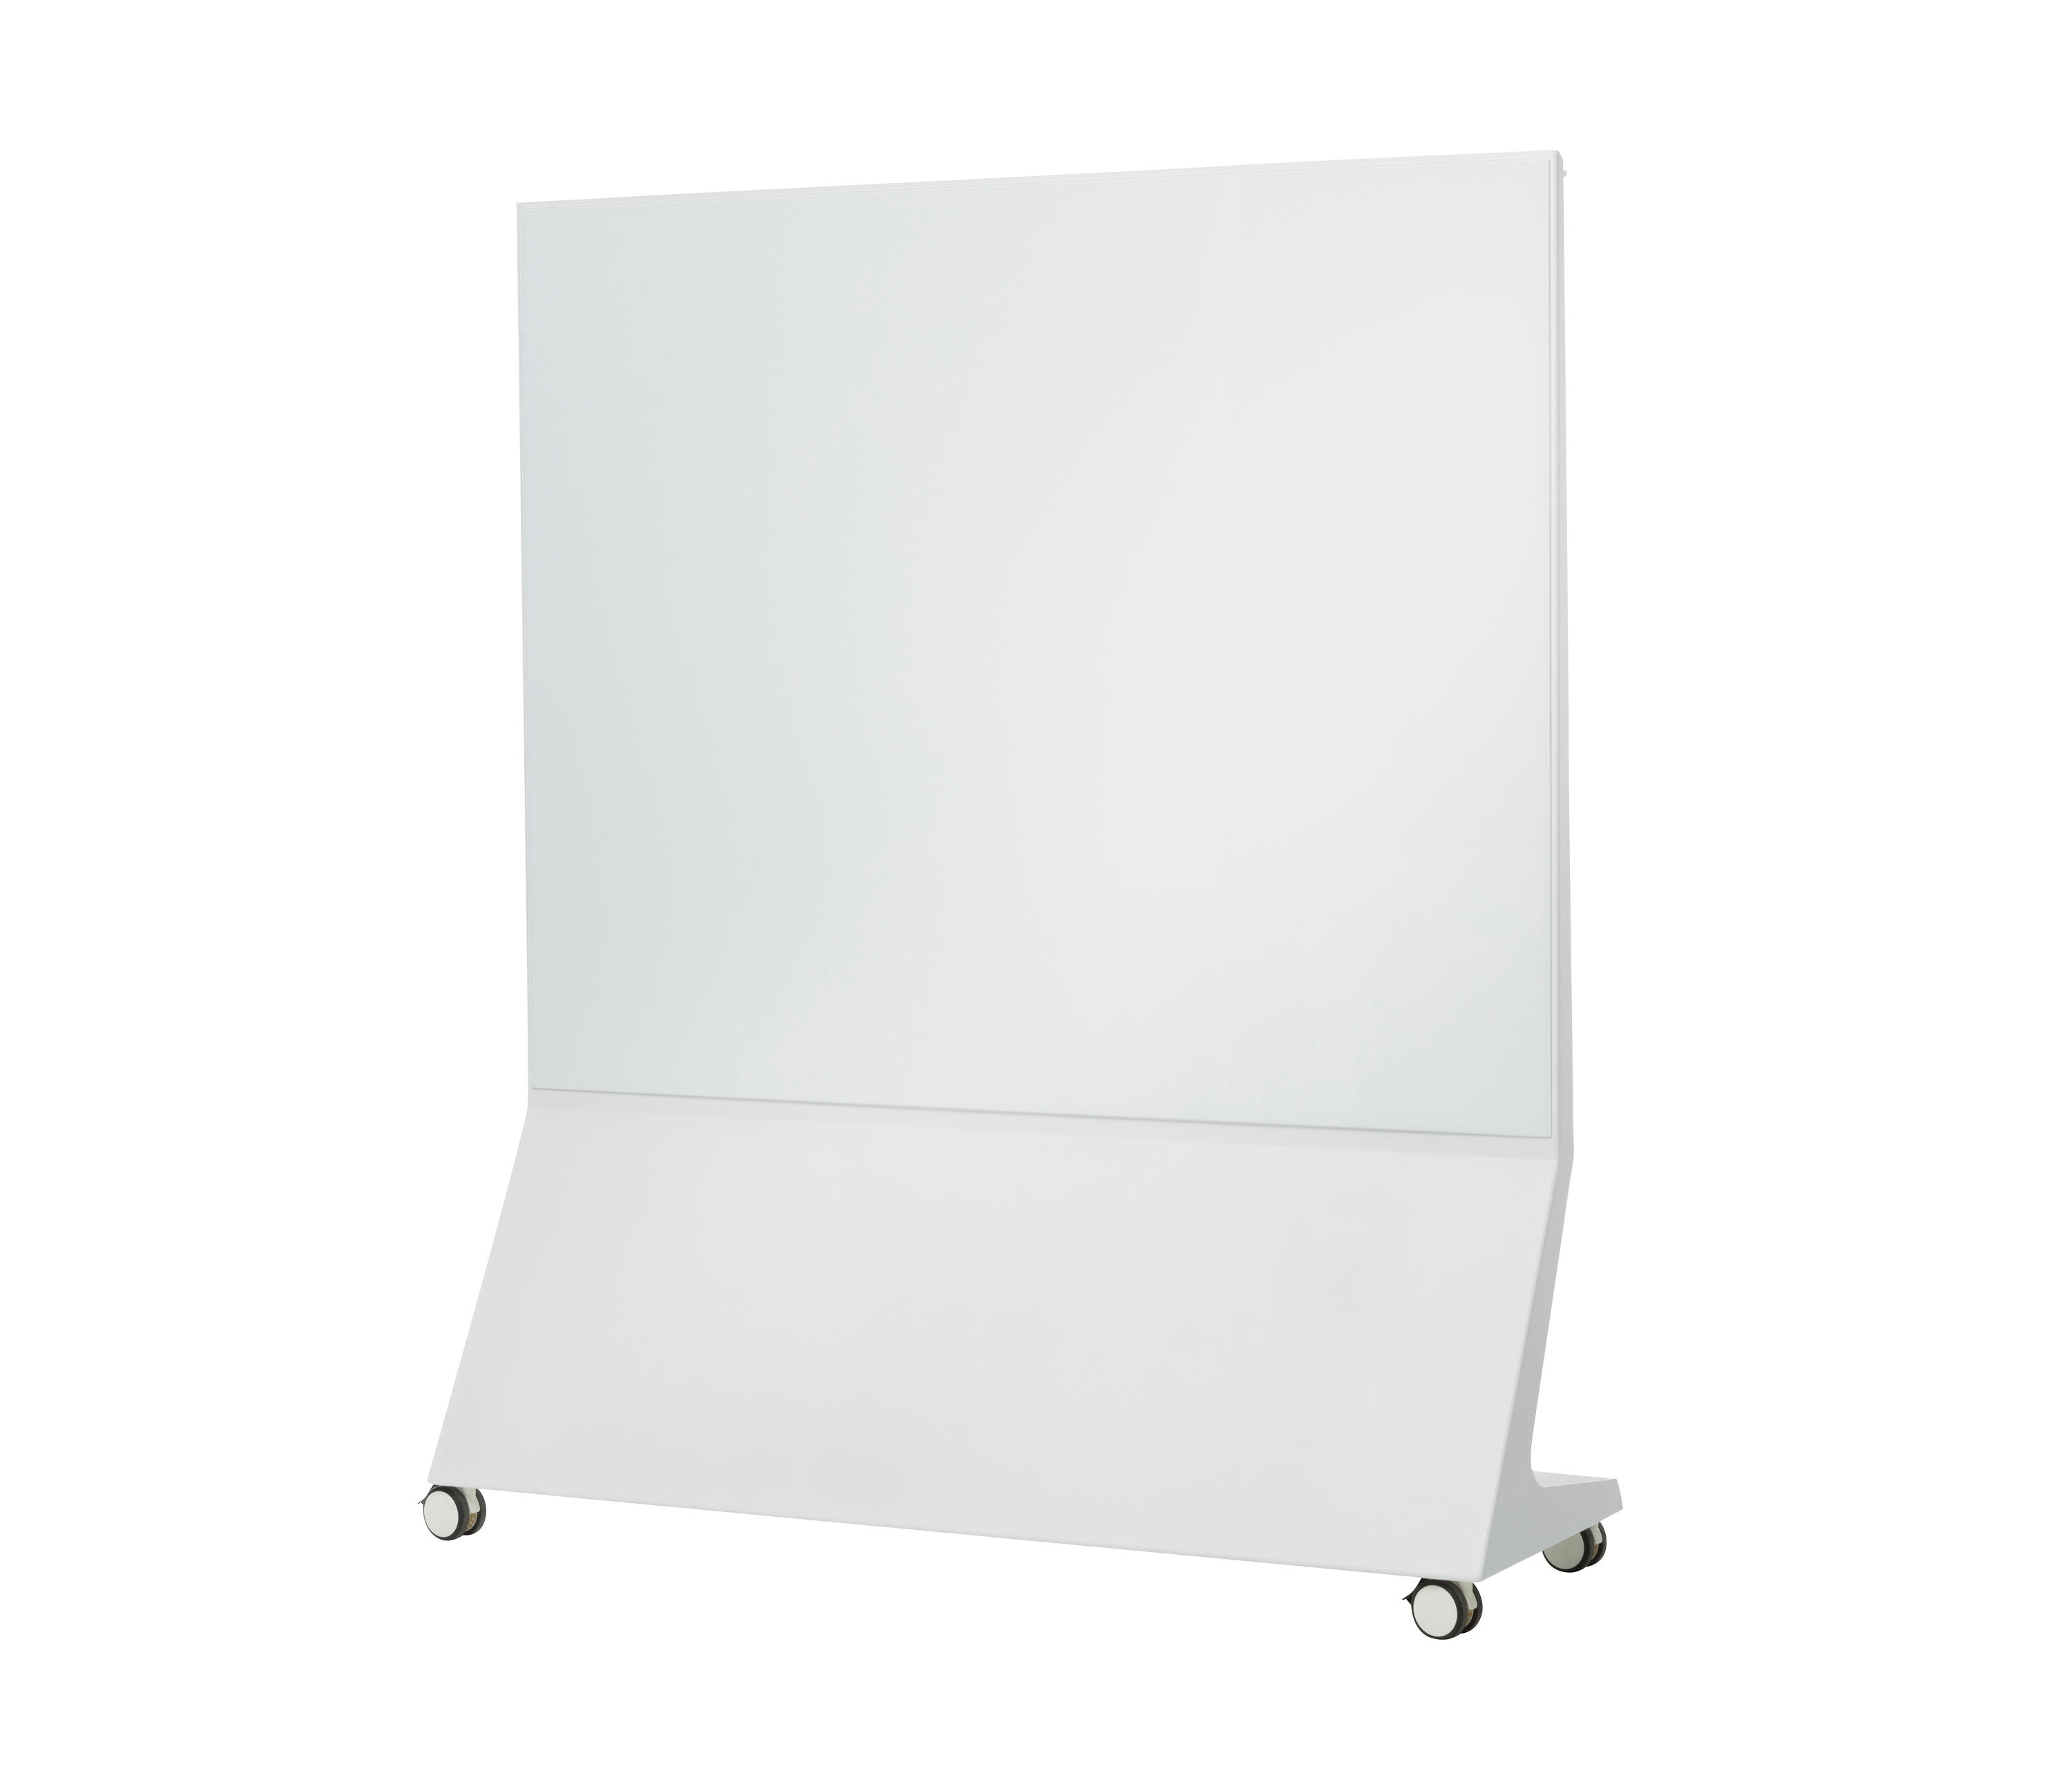 CHAT BOARD® MOBILE THEATRE - Flip charts / Writing boards from CHAT